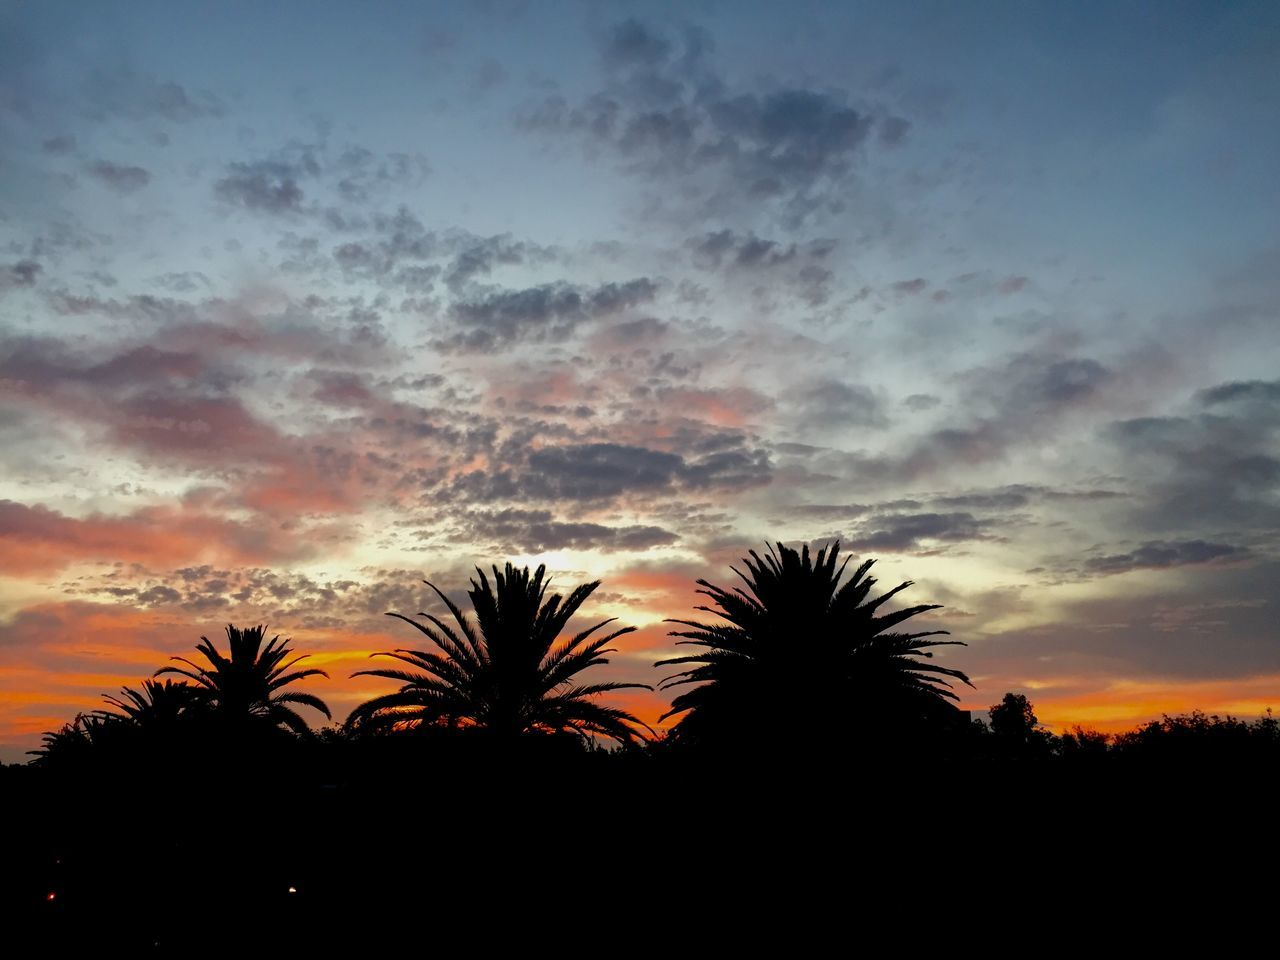 sunset, silhouette, tree, sky, beauty in nature, nature, palm tree, scenics, no people, tranquility, outdoors